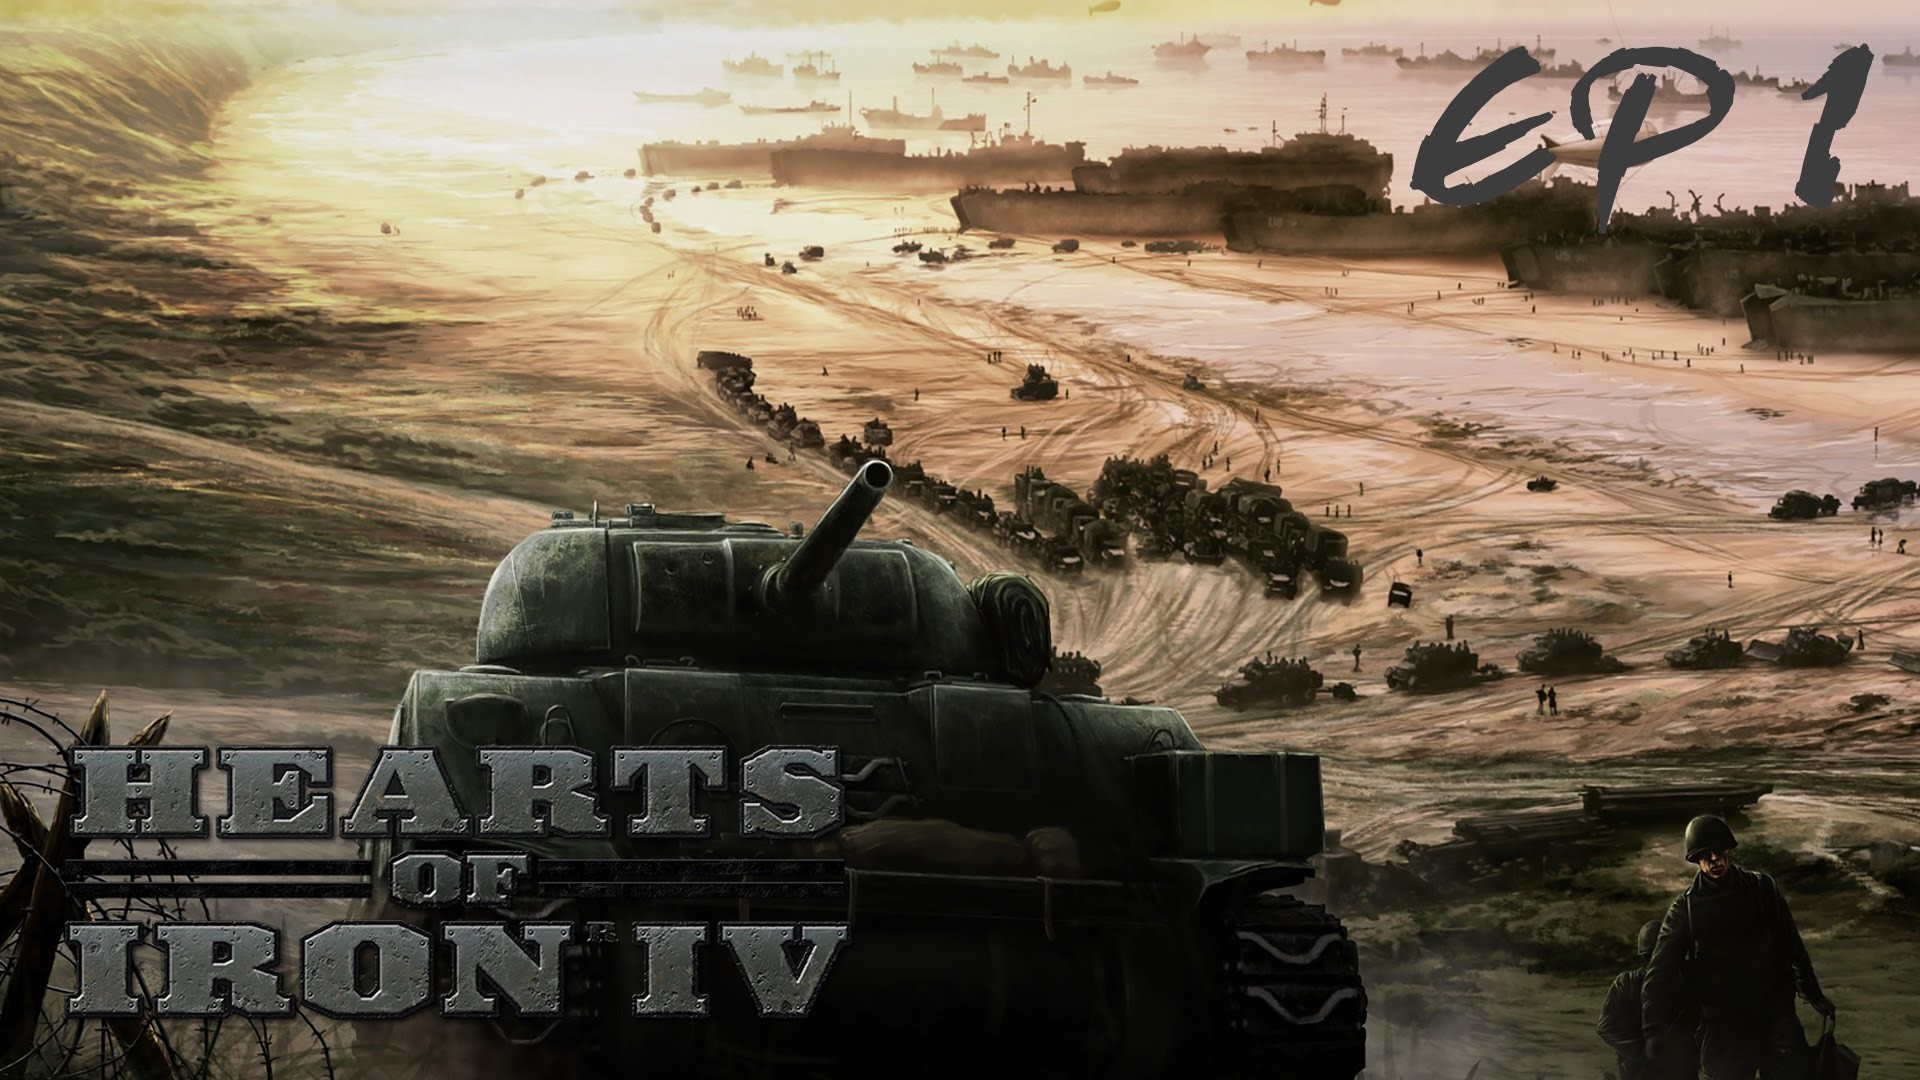 Hearts Of Iron Wallpaper 82 Images